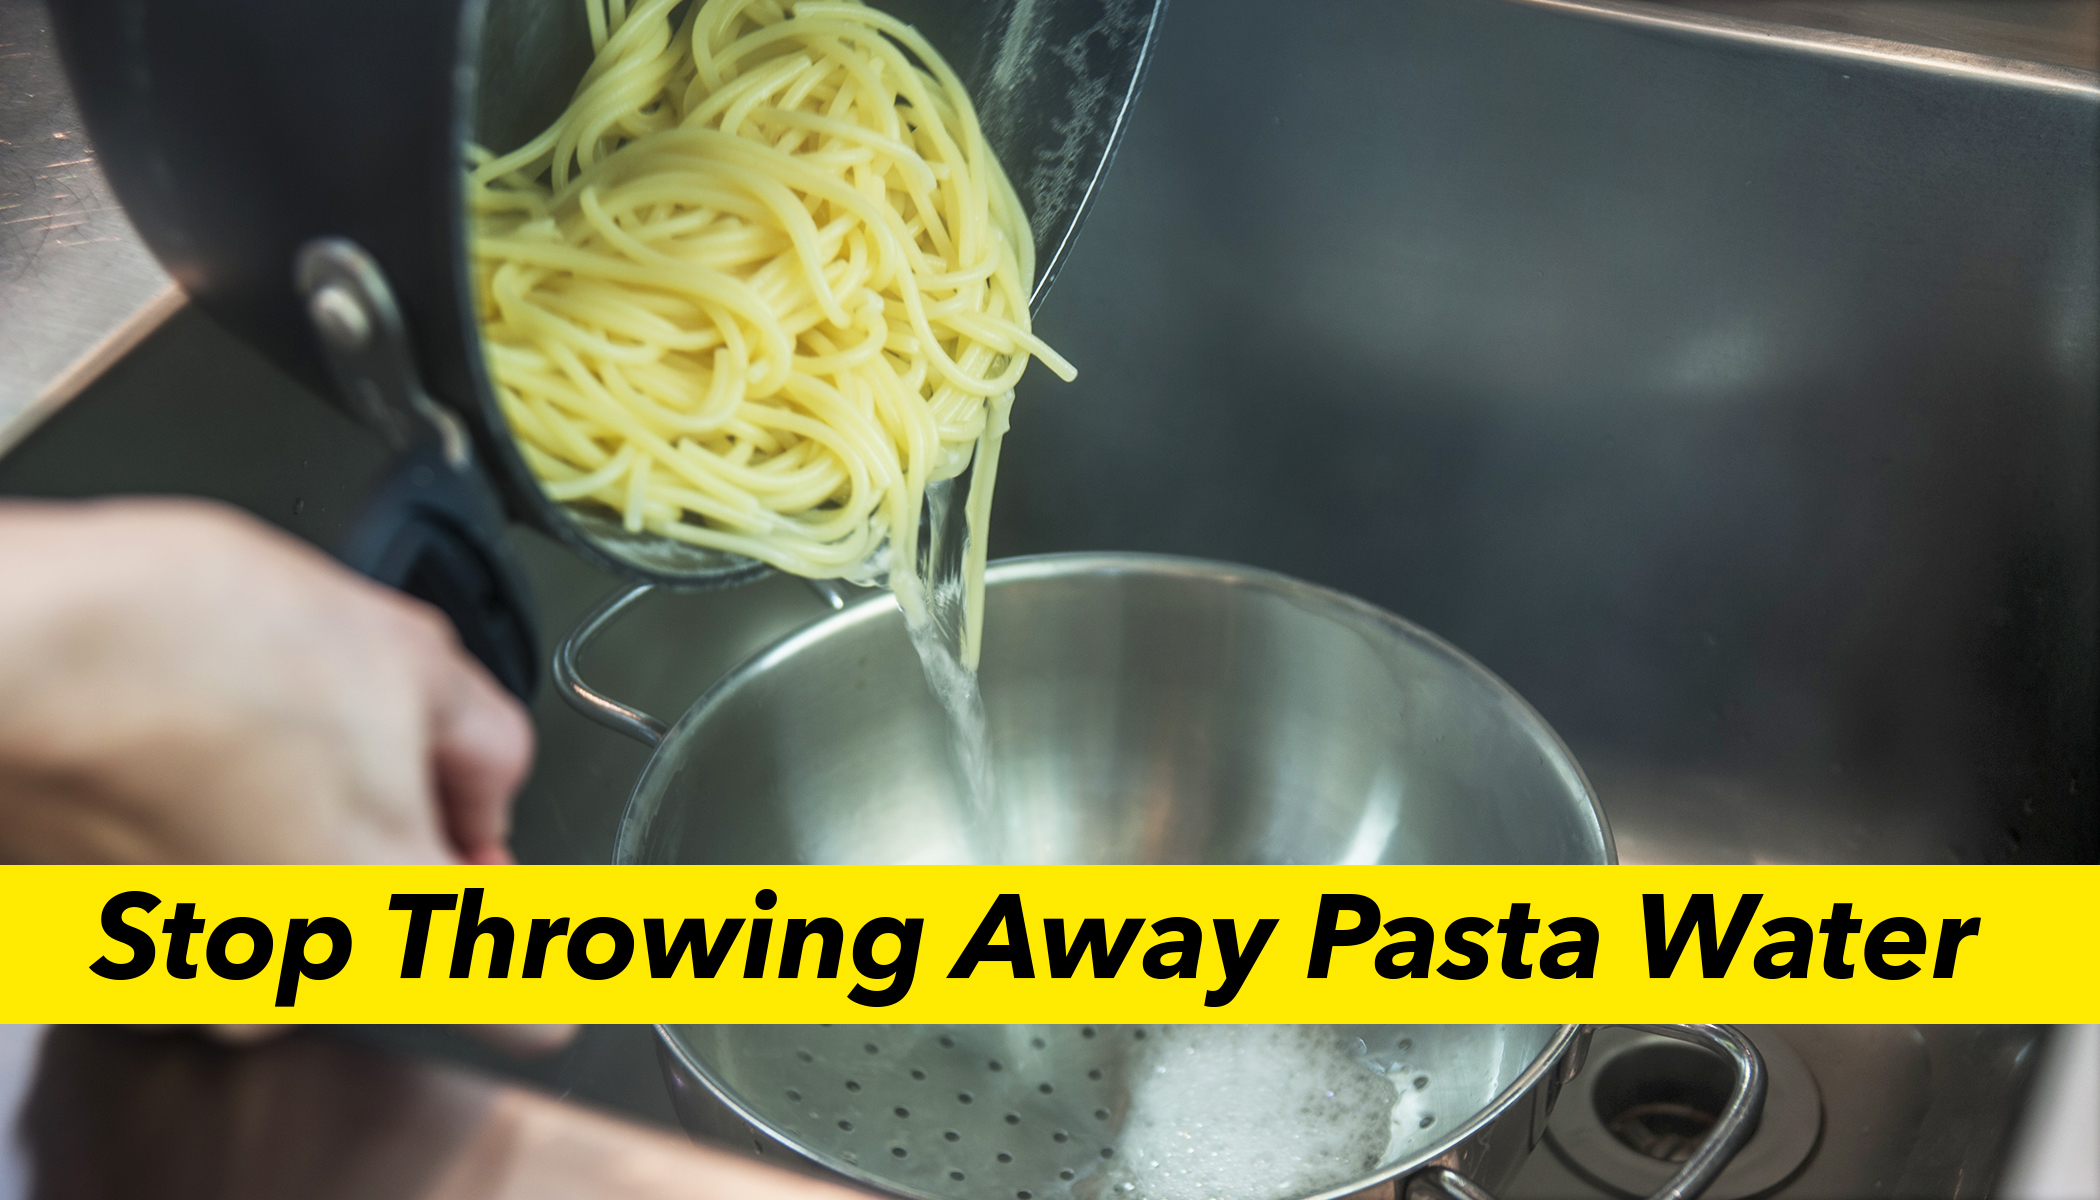 Never Drain Your Pasta in the Sink, Here's Why